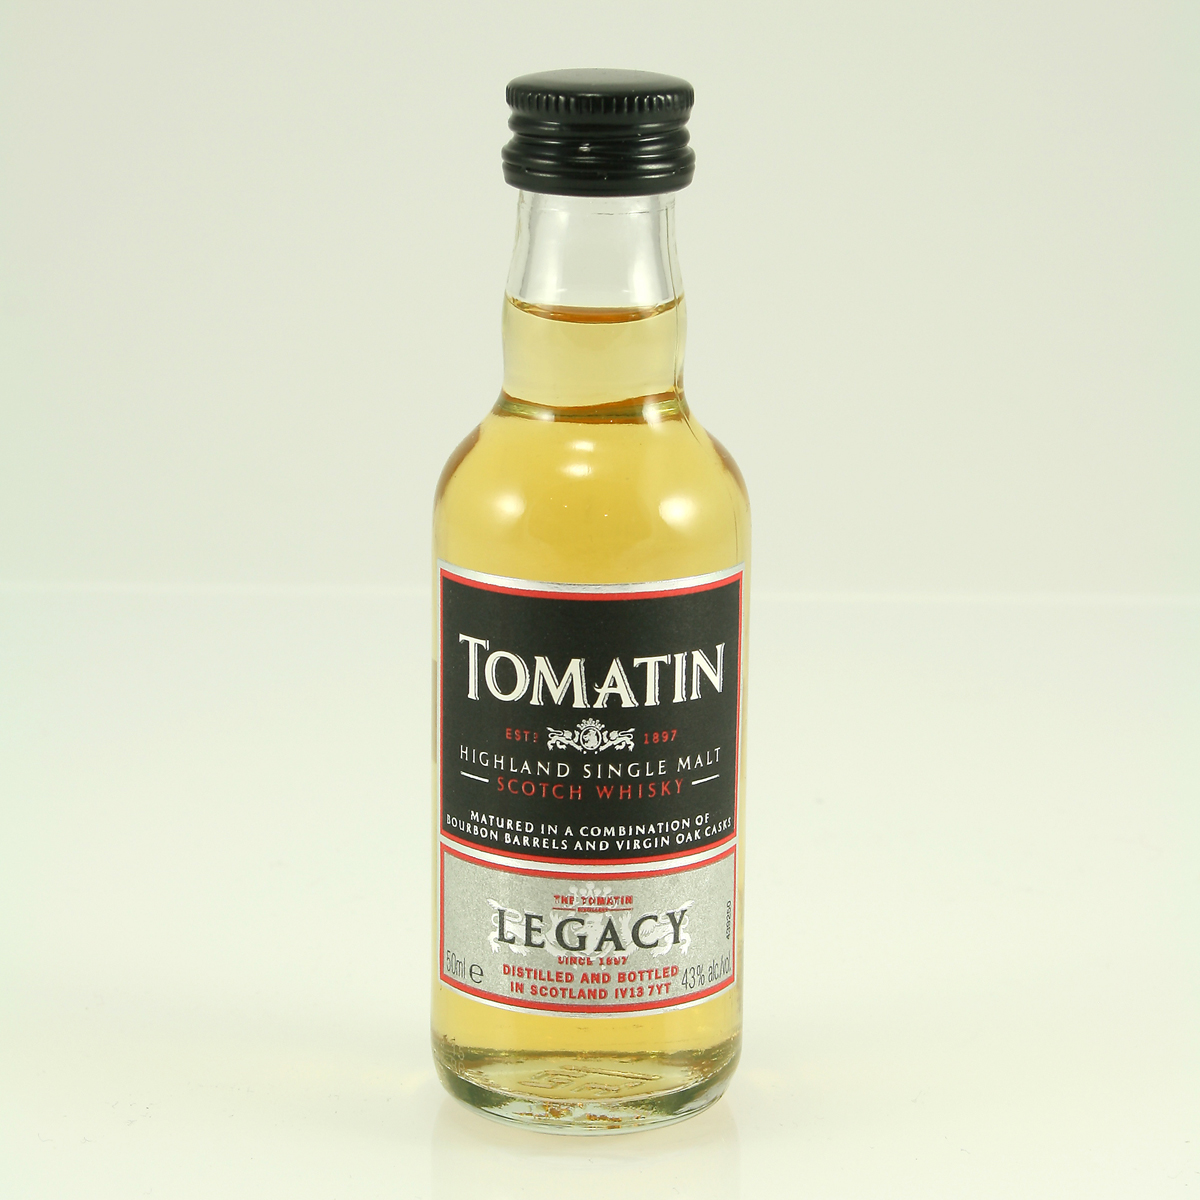 TOMATIN Legacy 43% 5cl